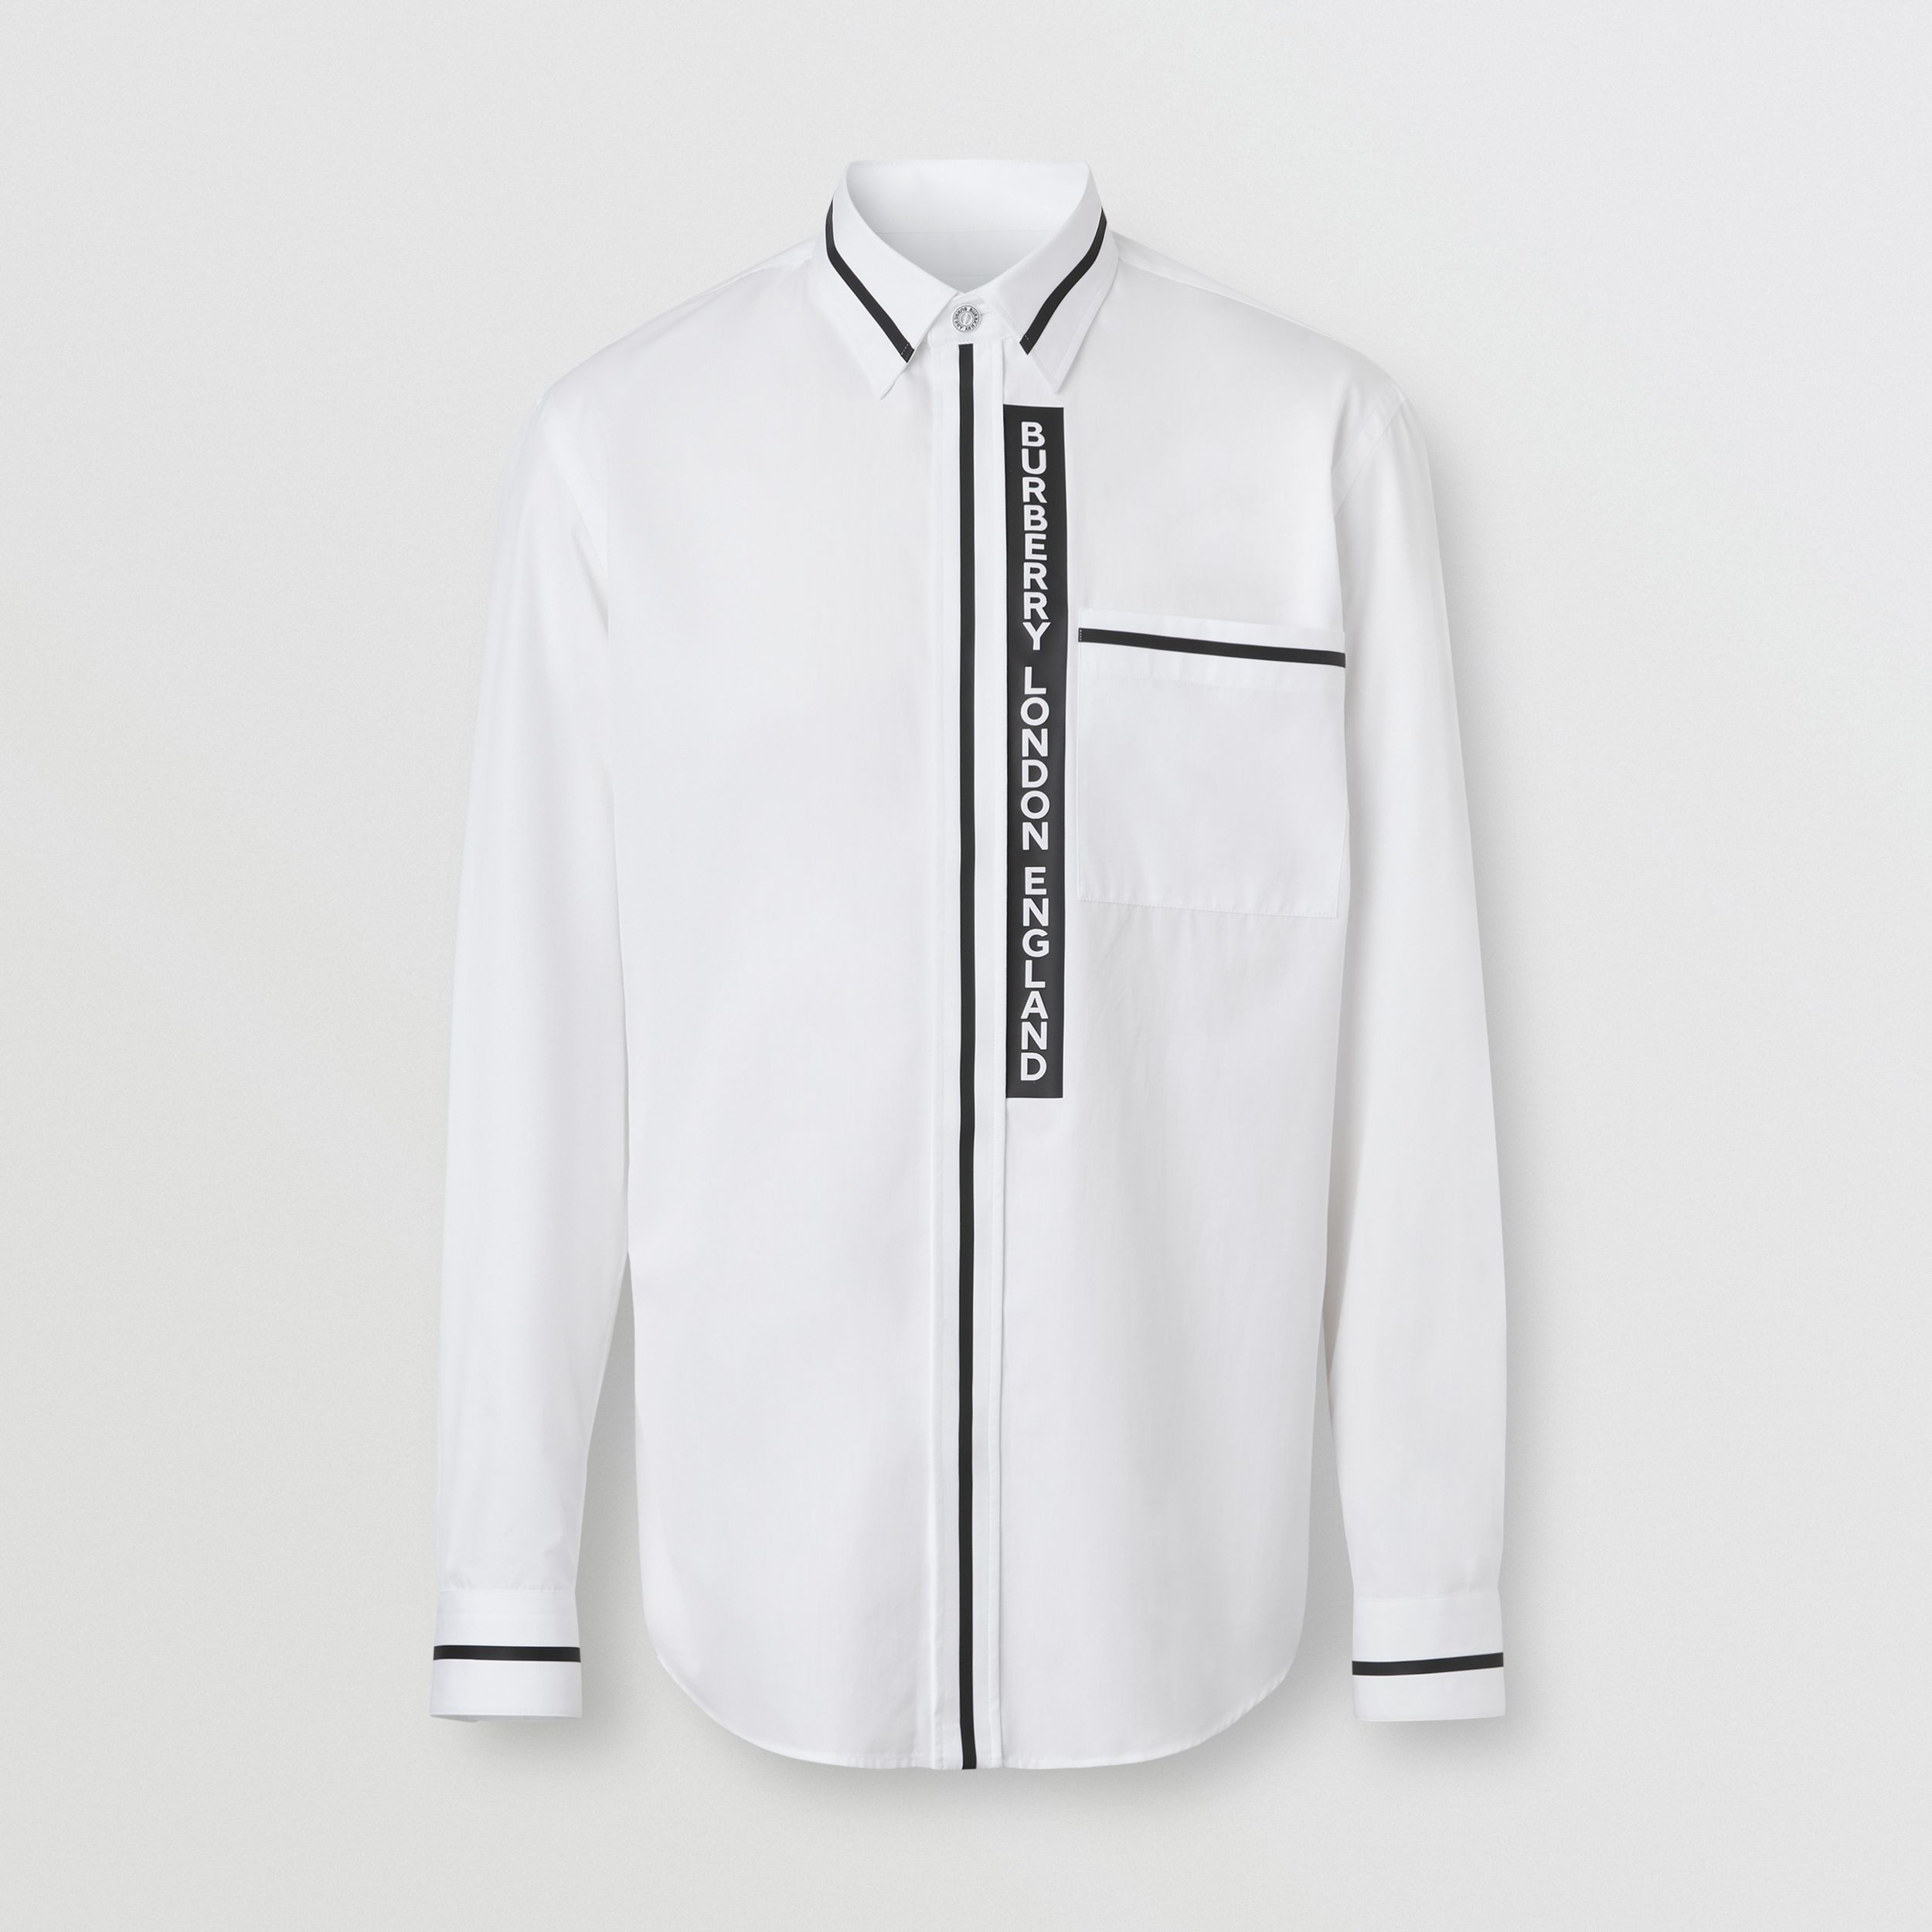 Logo Appliqué Cotton Poplin Shirt in Optic White - Men | Burberry - 4